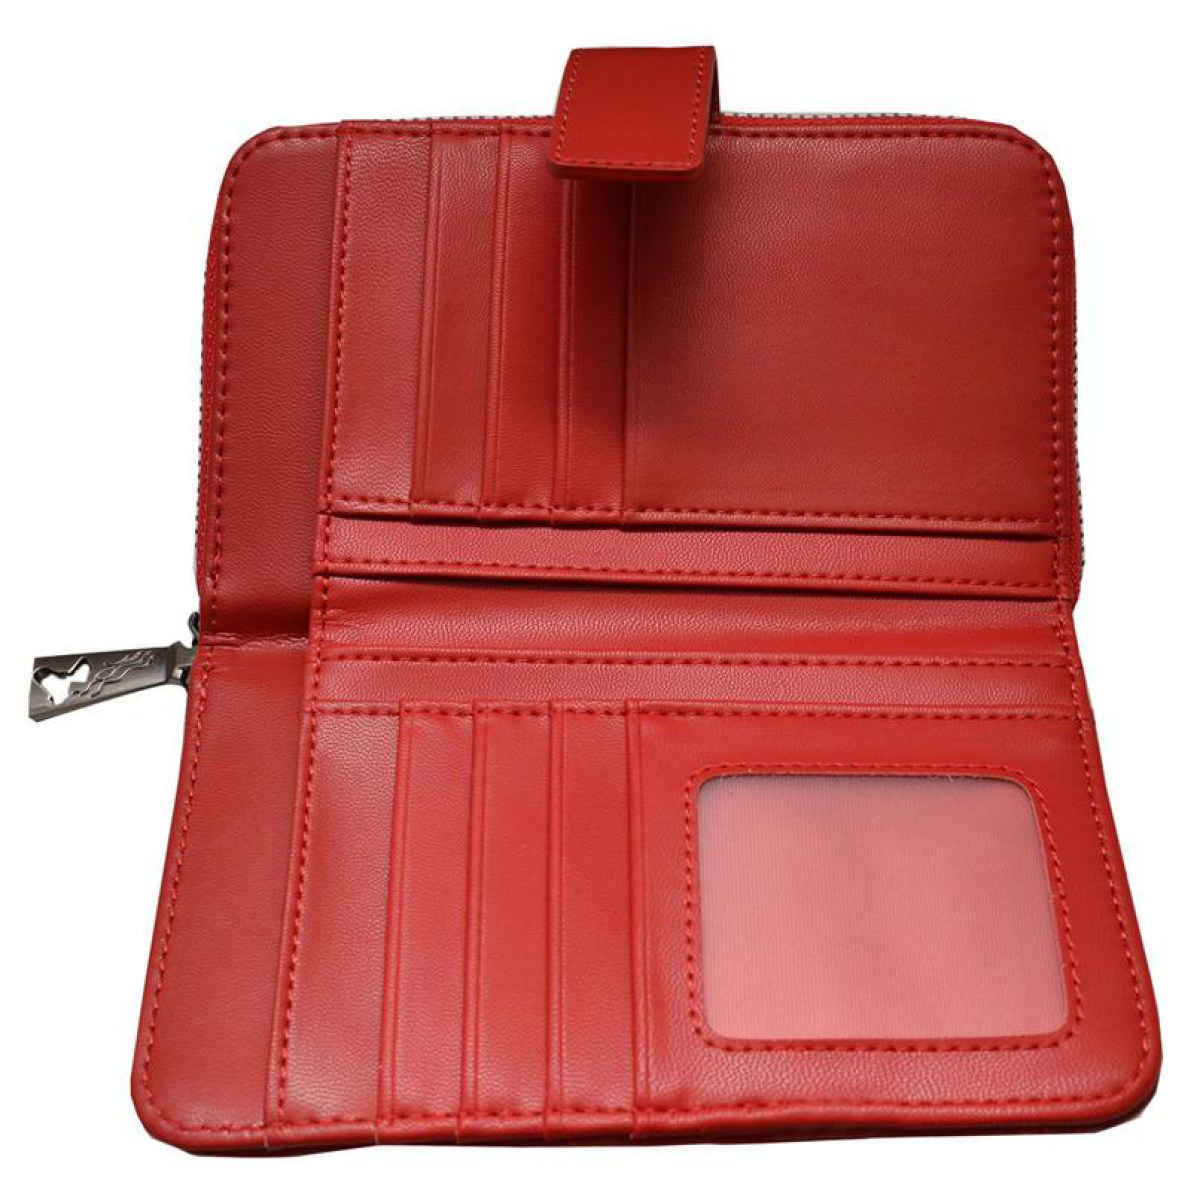 30-WALLET-Q-1768-5 (RED) 2